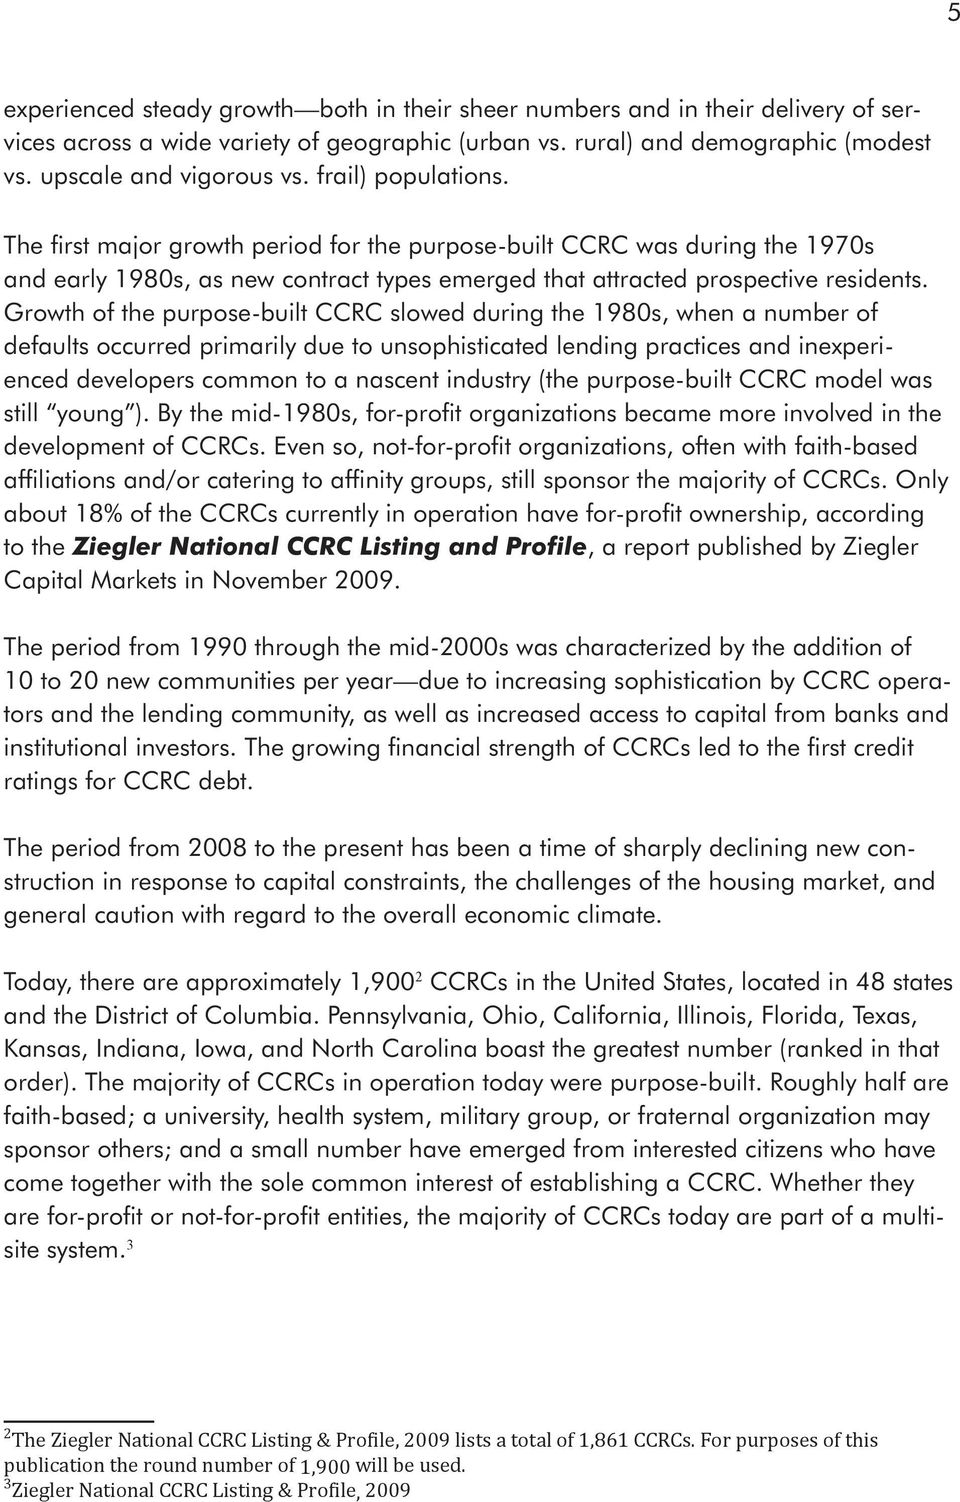 Growth of the purpose-built CCRC slowed during the 1980s, when a number of defaults occurred primarily due to unsophisticated lending practices and inexperienced developers common to a nascent